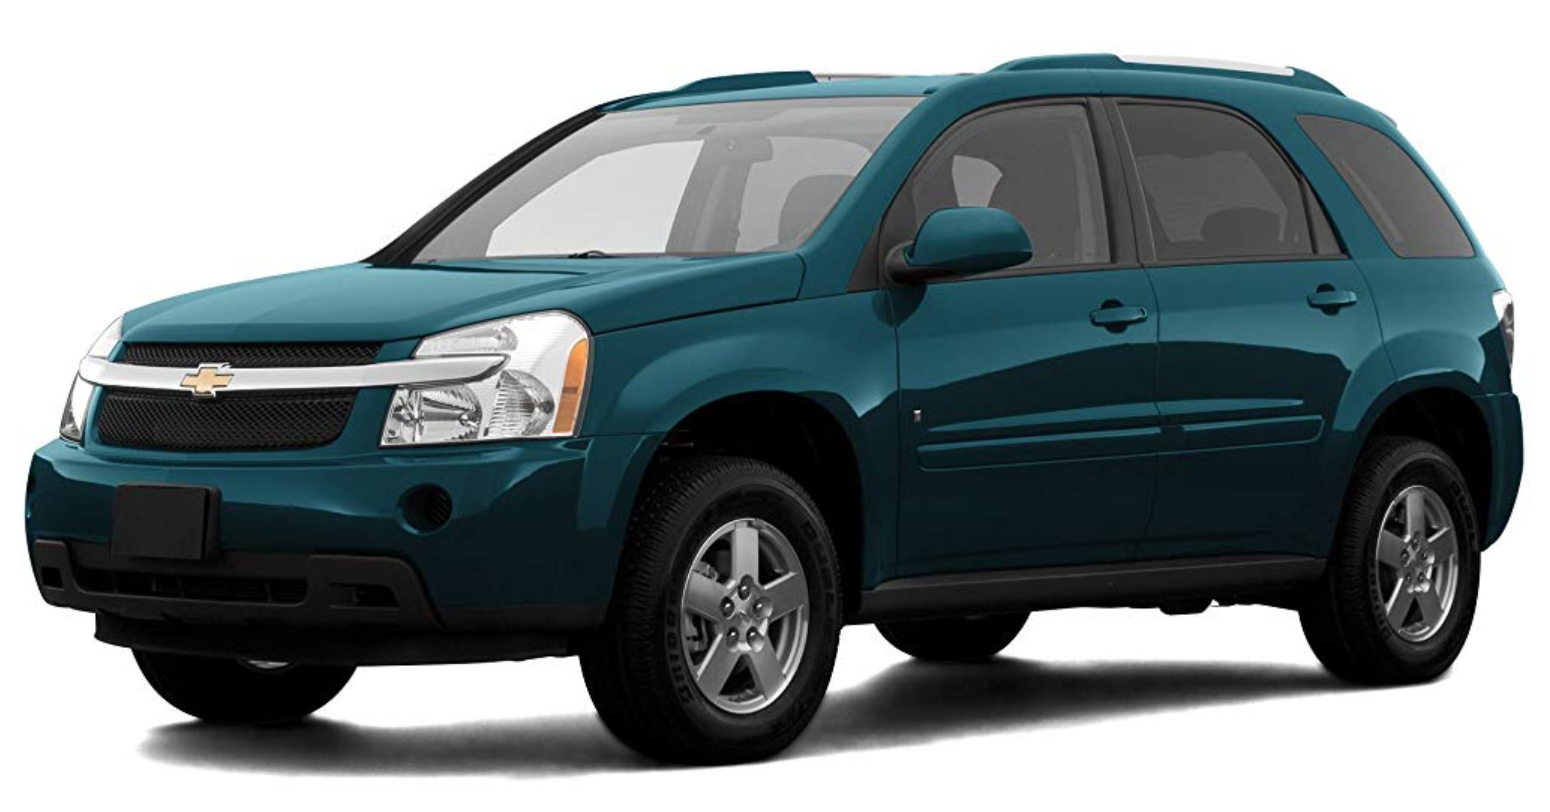 2007 Chevrolet Equinox Owners Manual In 2020 Chevrolet Equinox